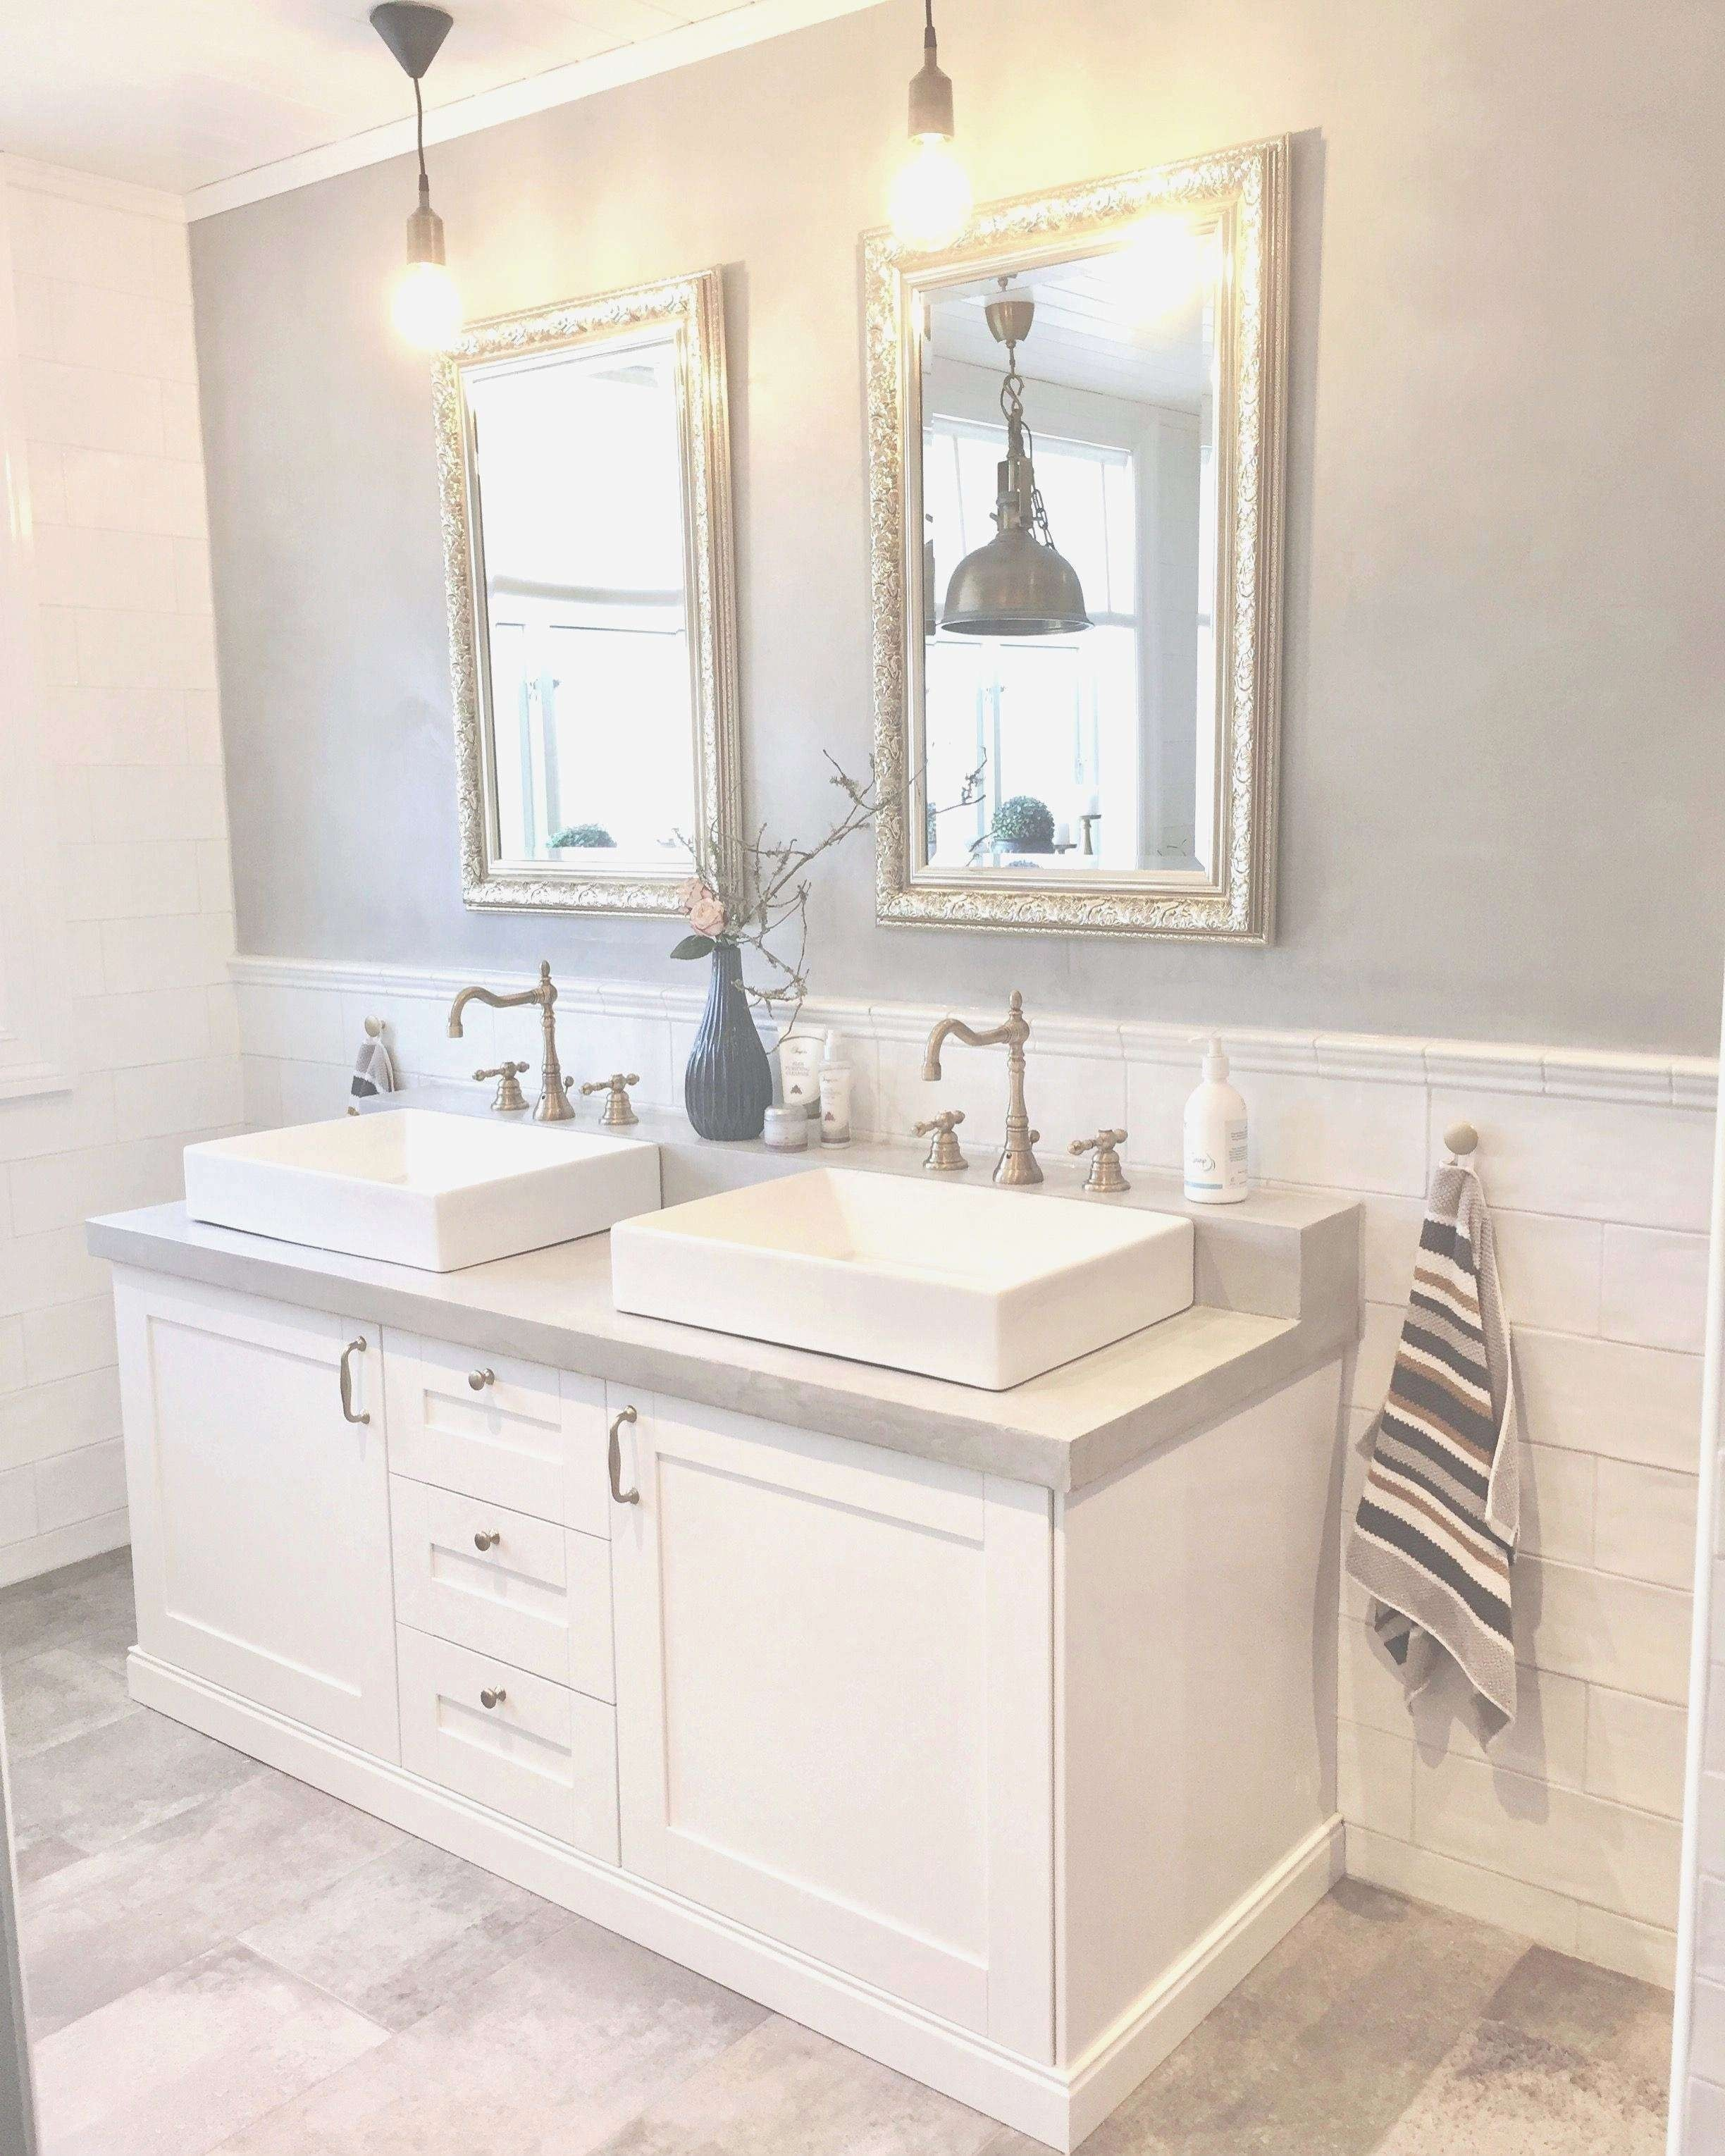 Bathroom Designs Ideas Awesome Bathroom Picture Ideas Lovely Tag Toilet Ideas 0d